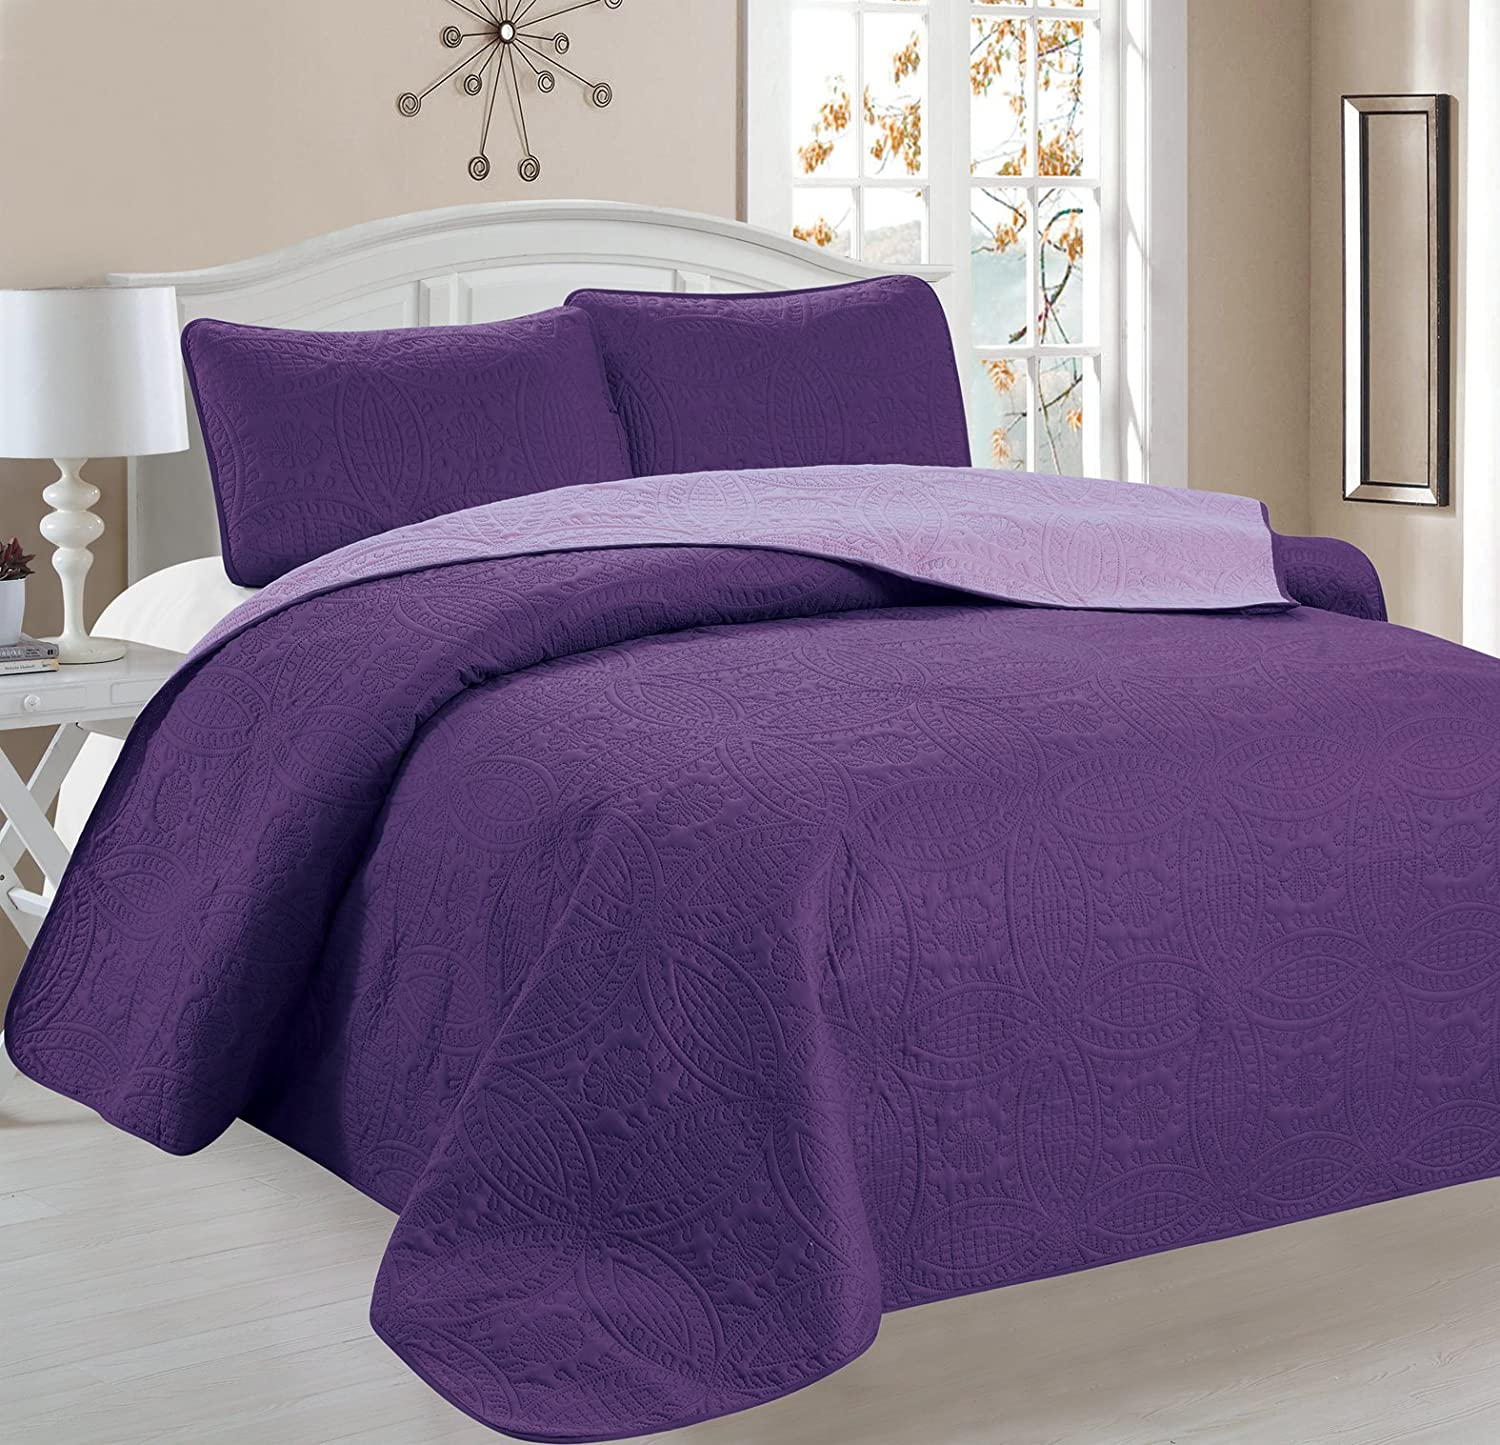 Victoria Design Reversible 3 PC Quilt Bedspread Set